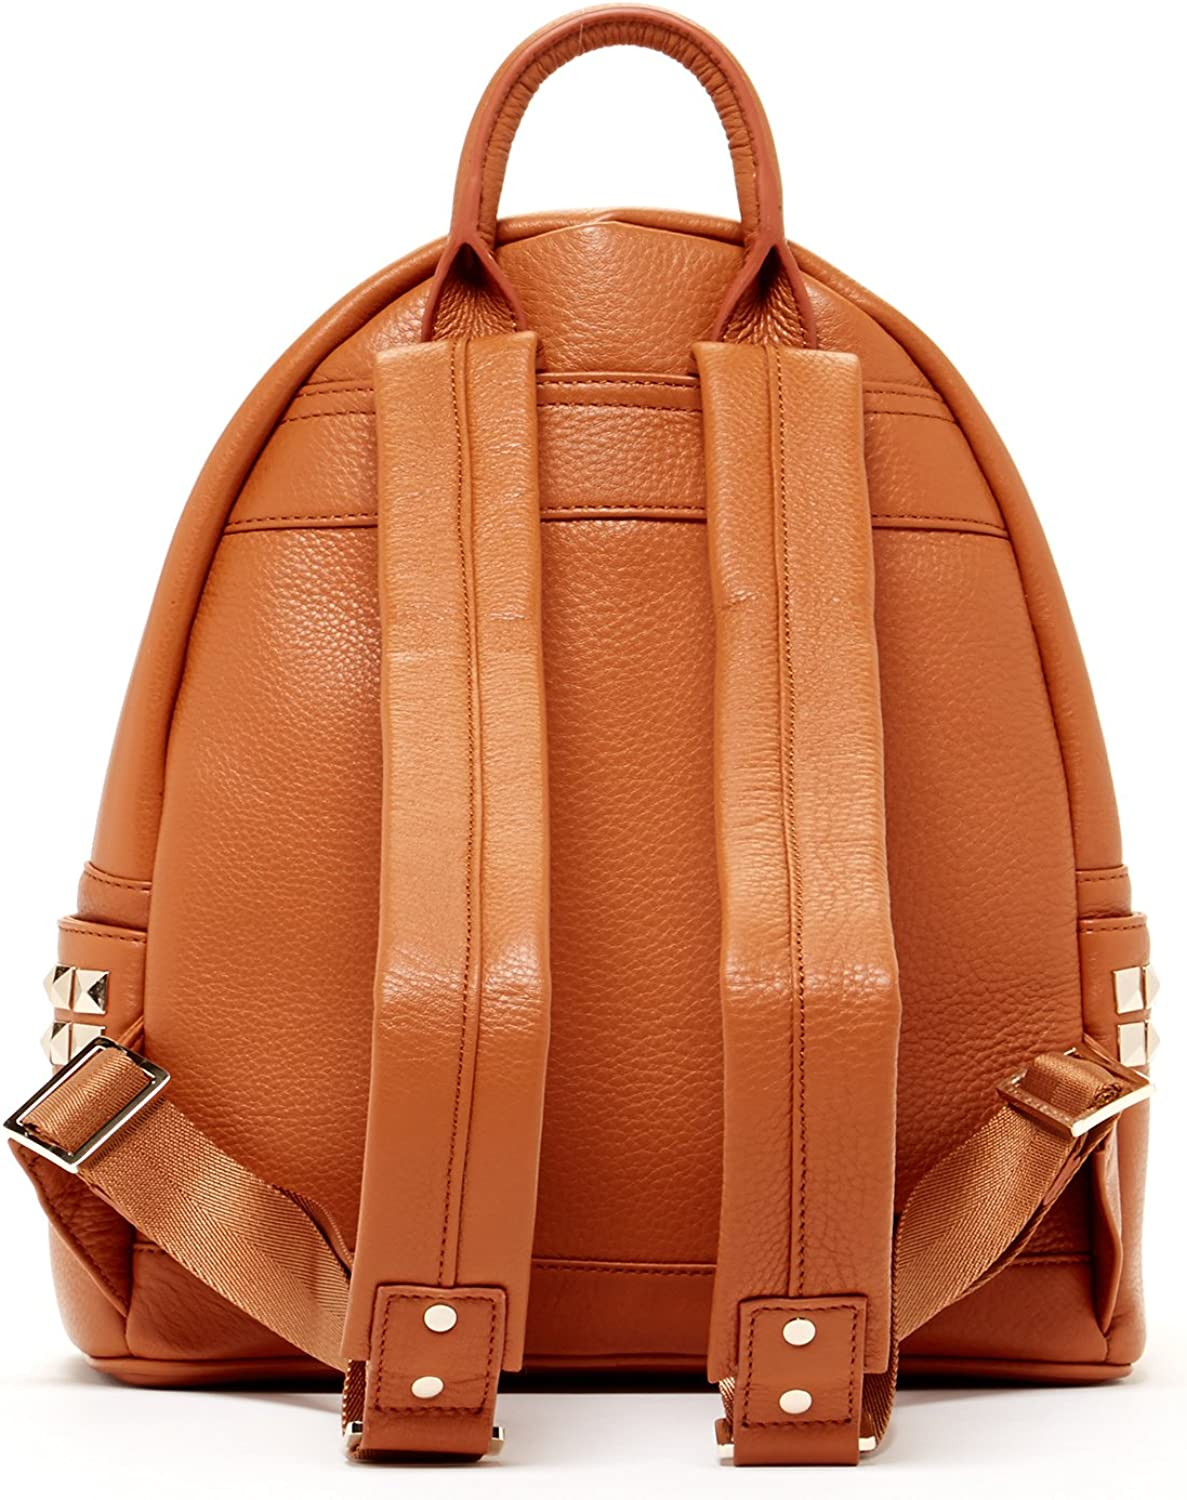 B01FQ3KMP8 SUSU Brown Pebble Leather Backpack Bags For Women Cute Designer Handbags With Studs and Front Pocket Travel Fashion Backpacks Purses With Side Pockets Quality Rucksack Girlfriend or Wife Birthday Gift 71NOK2B4pi-L.UL1500_